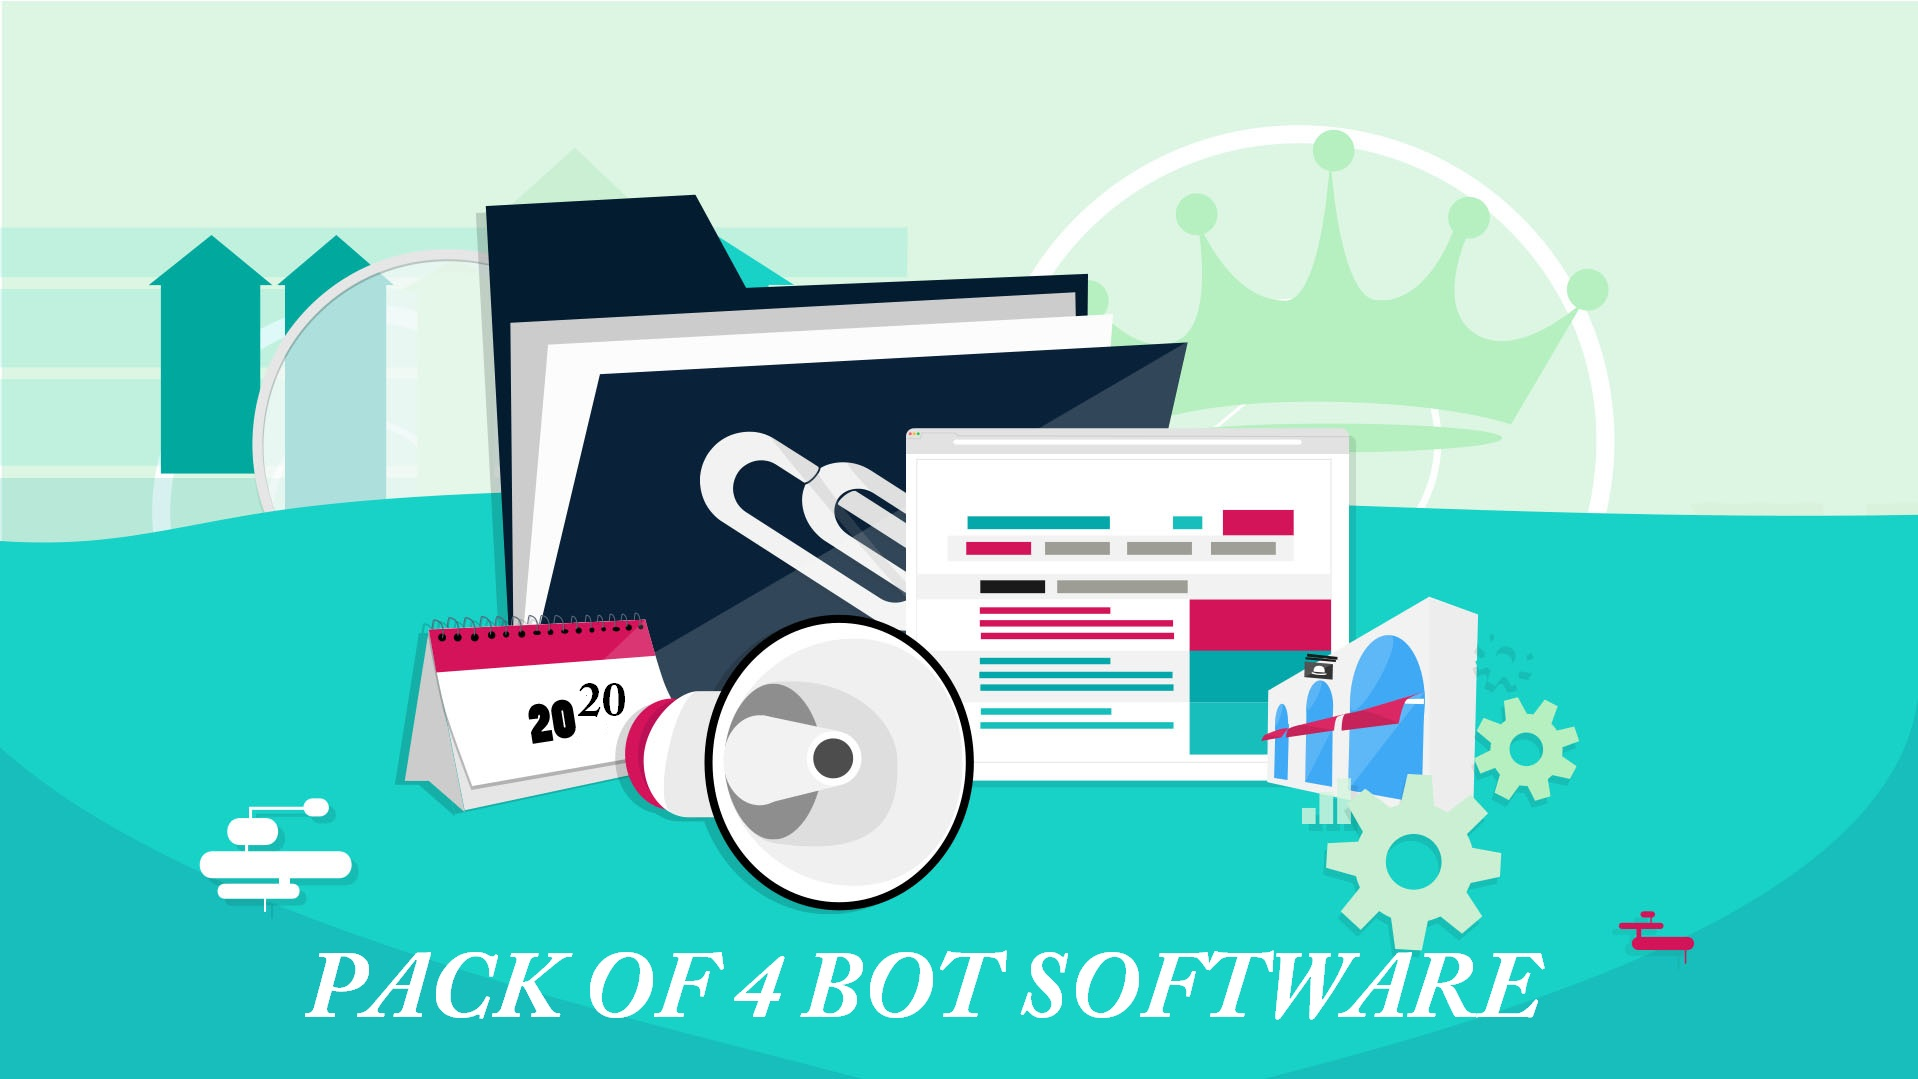 Pack of 4 best software YouTube promotion for ranking in google